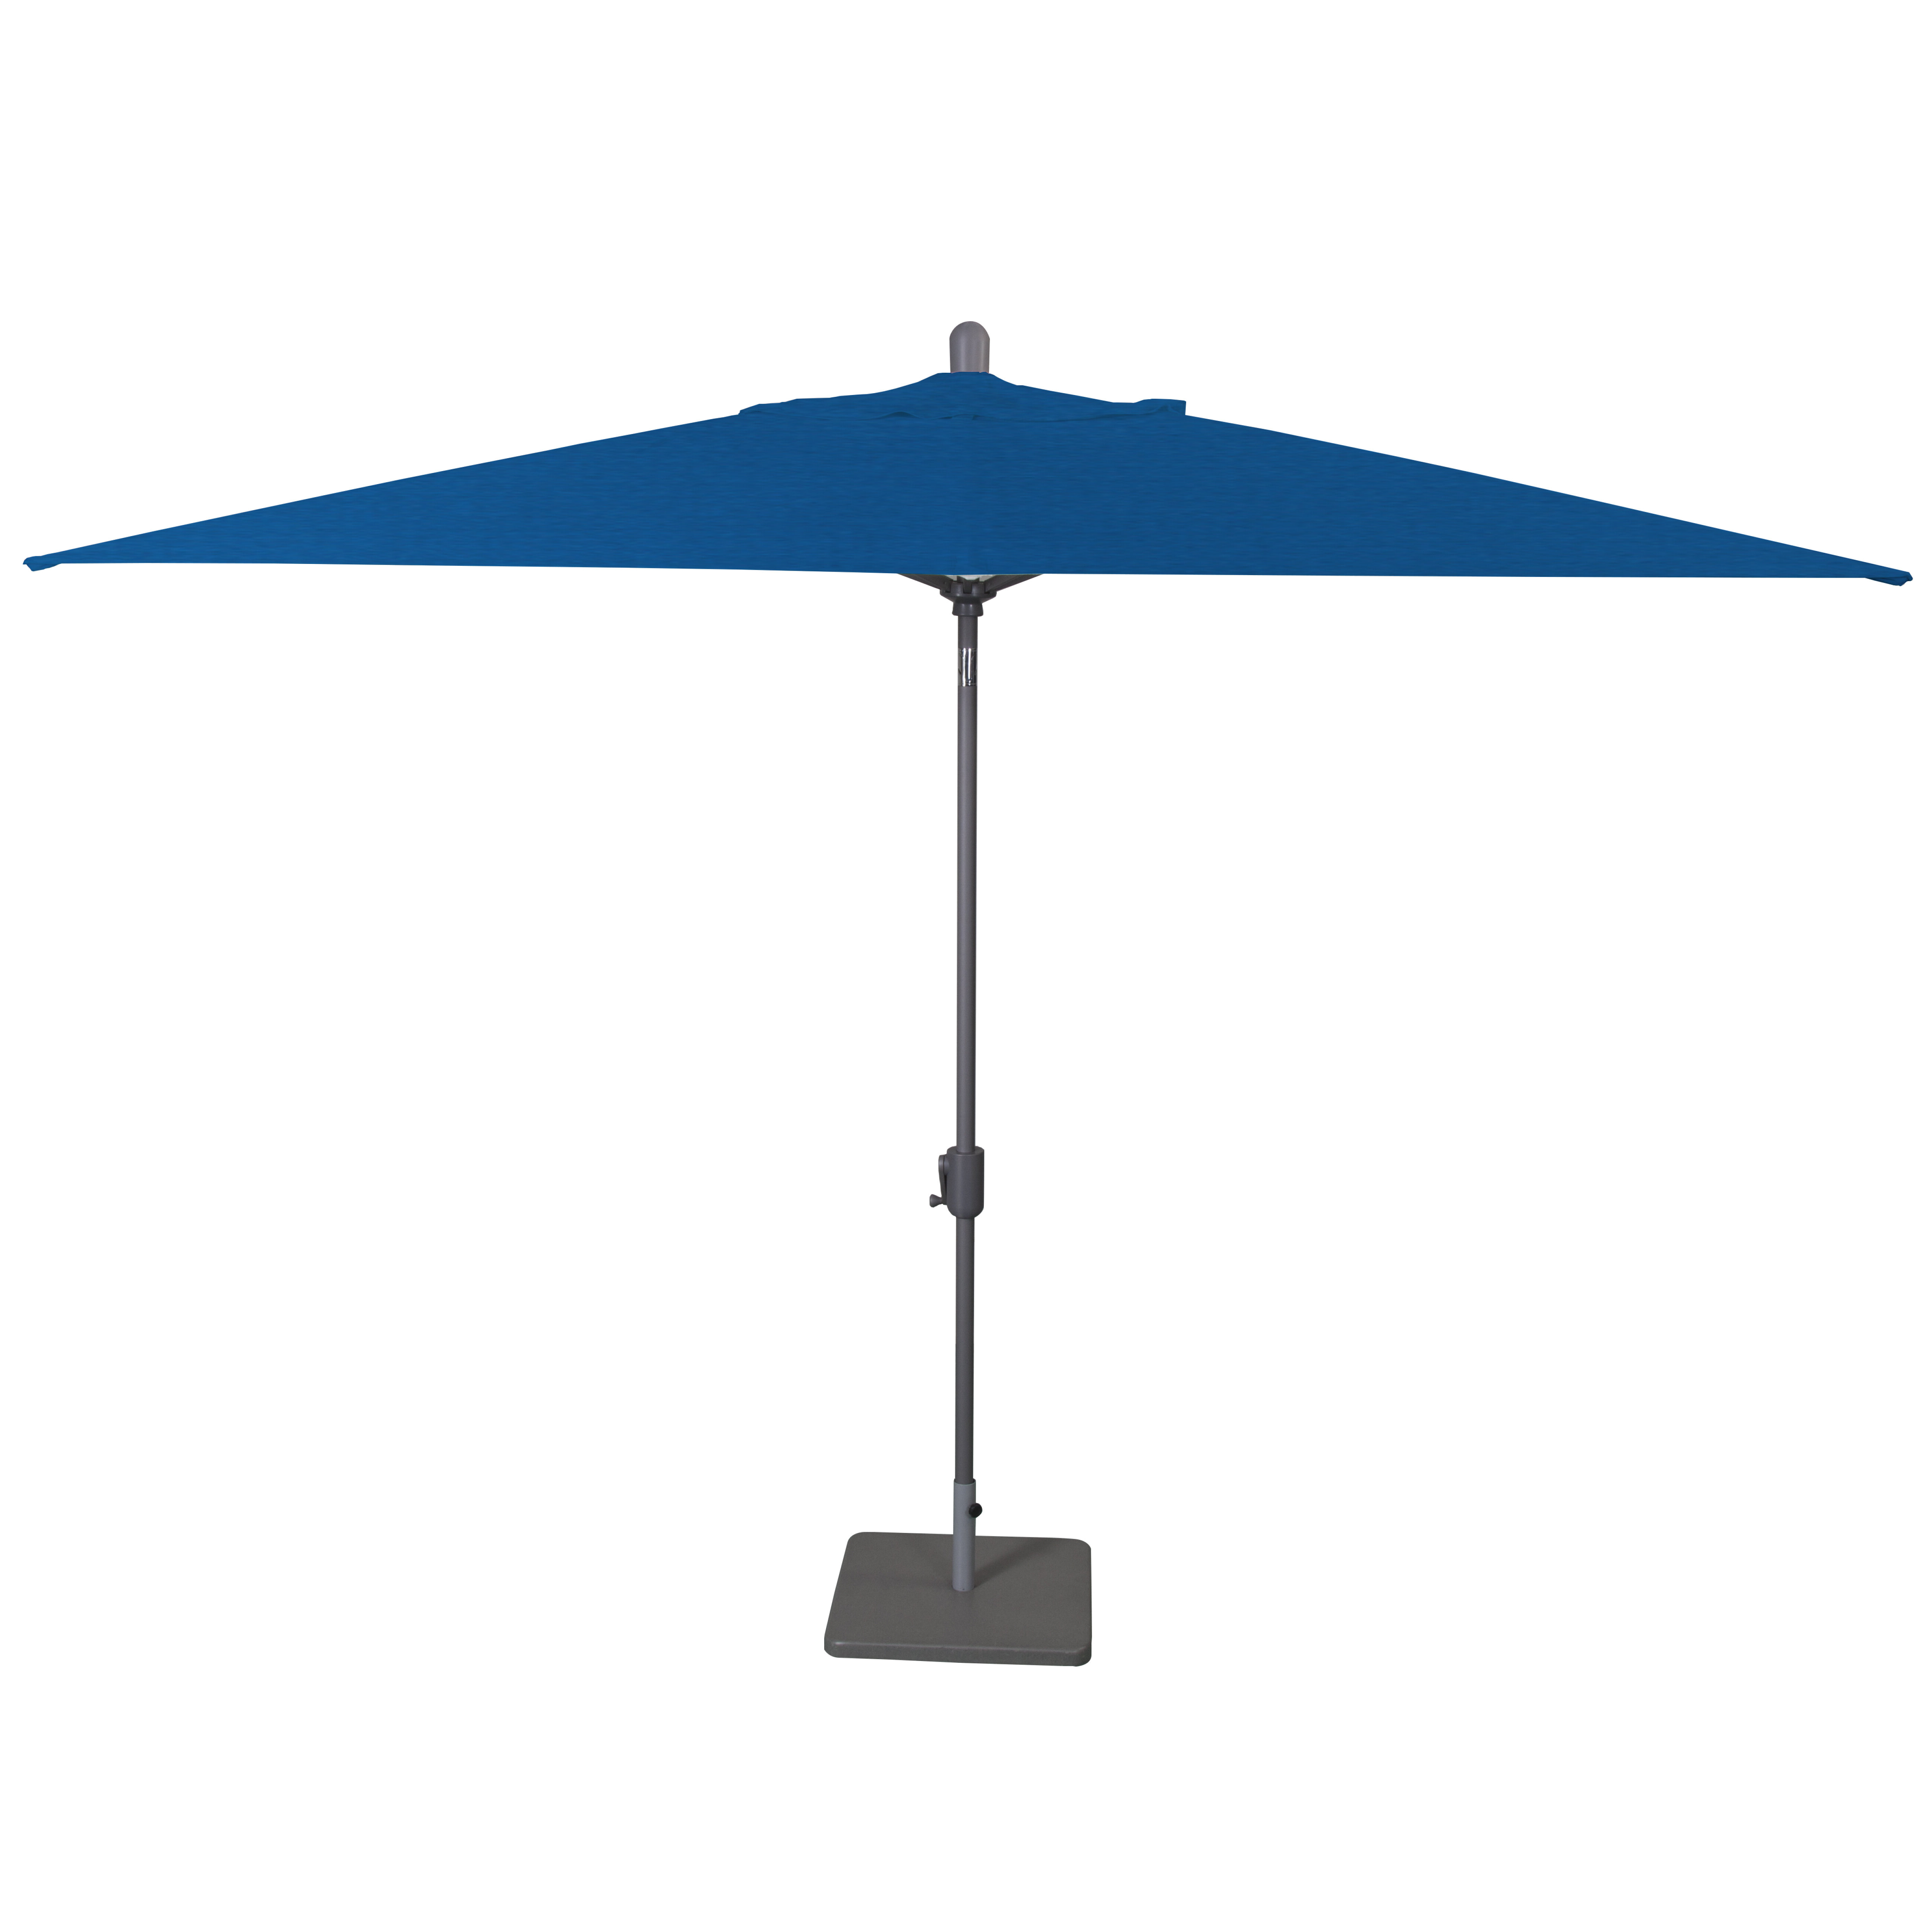 Wiebe Market Sunbrella Umbrellas Intended For Widely Used Wieczorek Auto Tilt 10' X  (View 17 of 20)